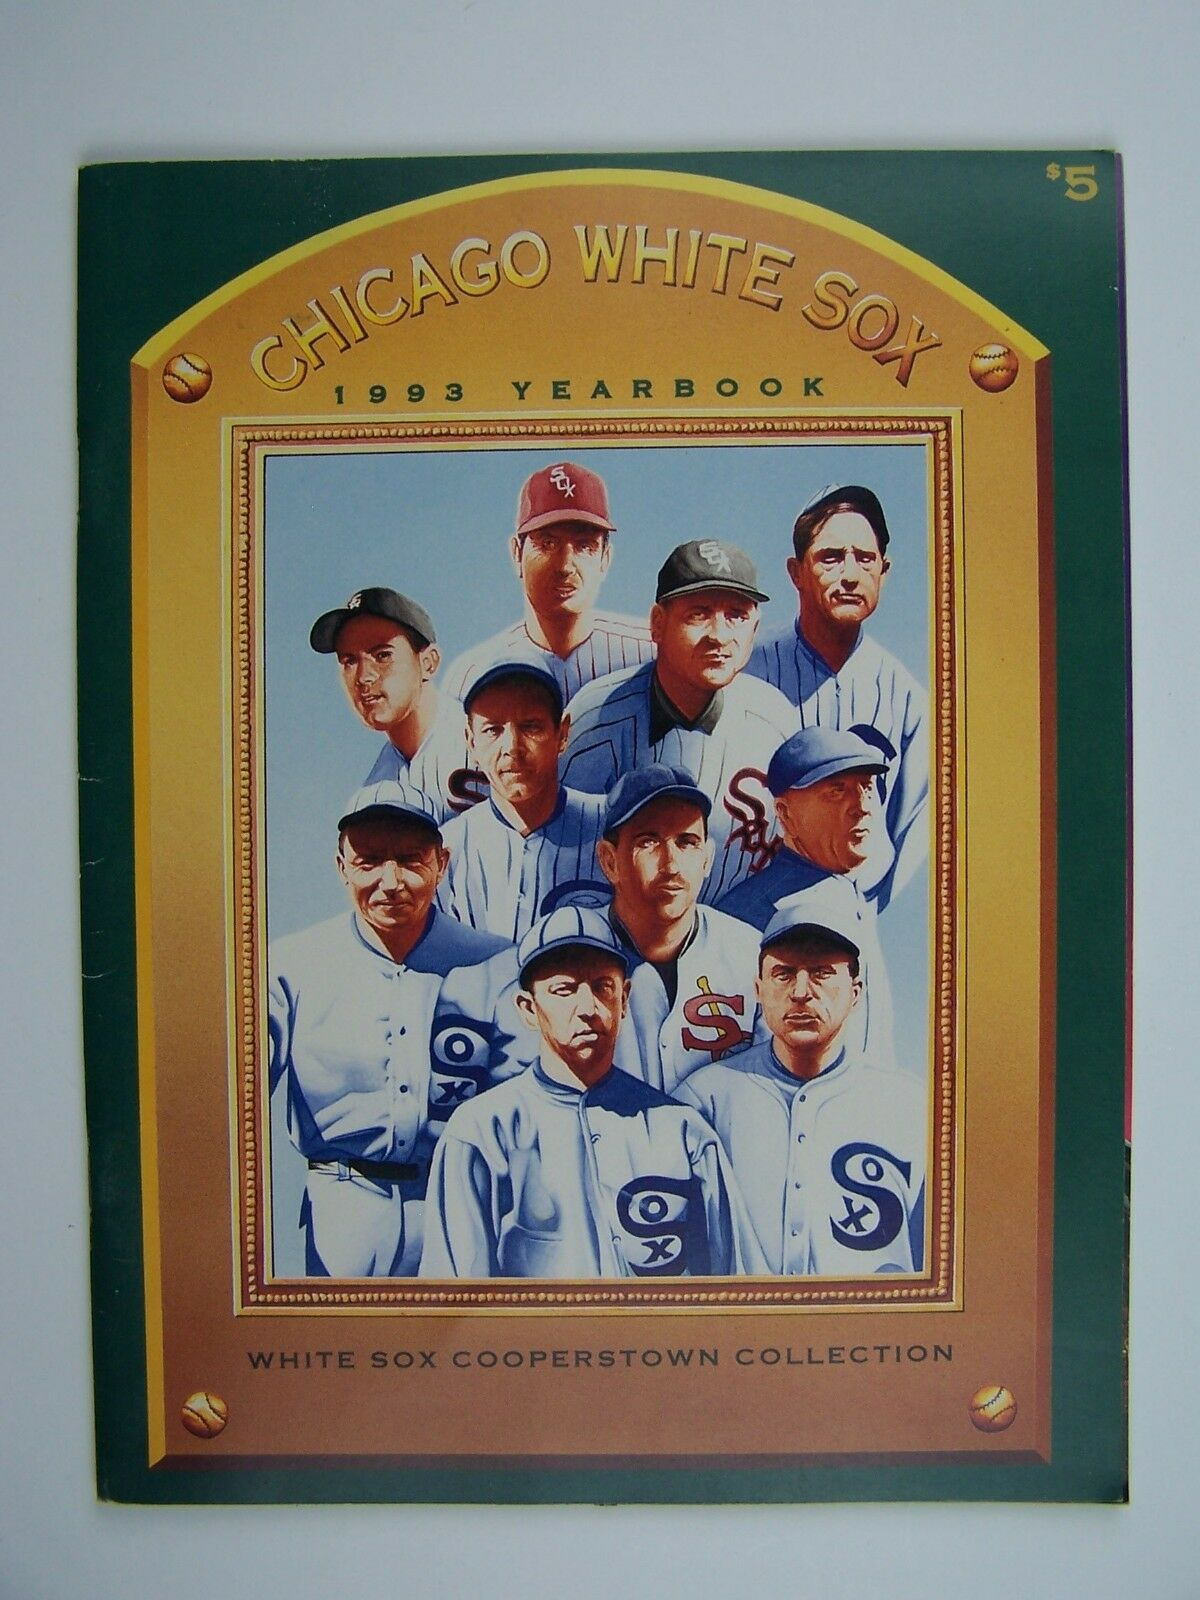 Chicago White Sox Baseball 1993 Yearbook